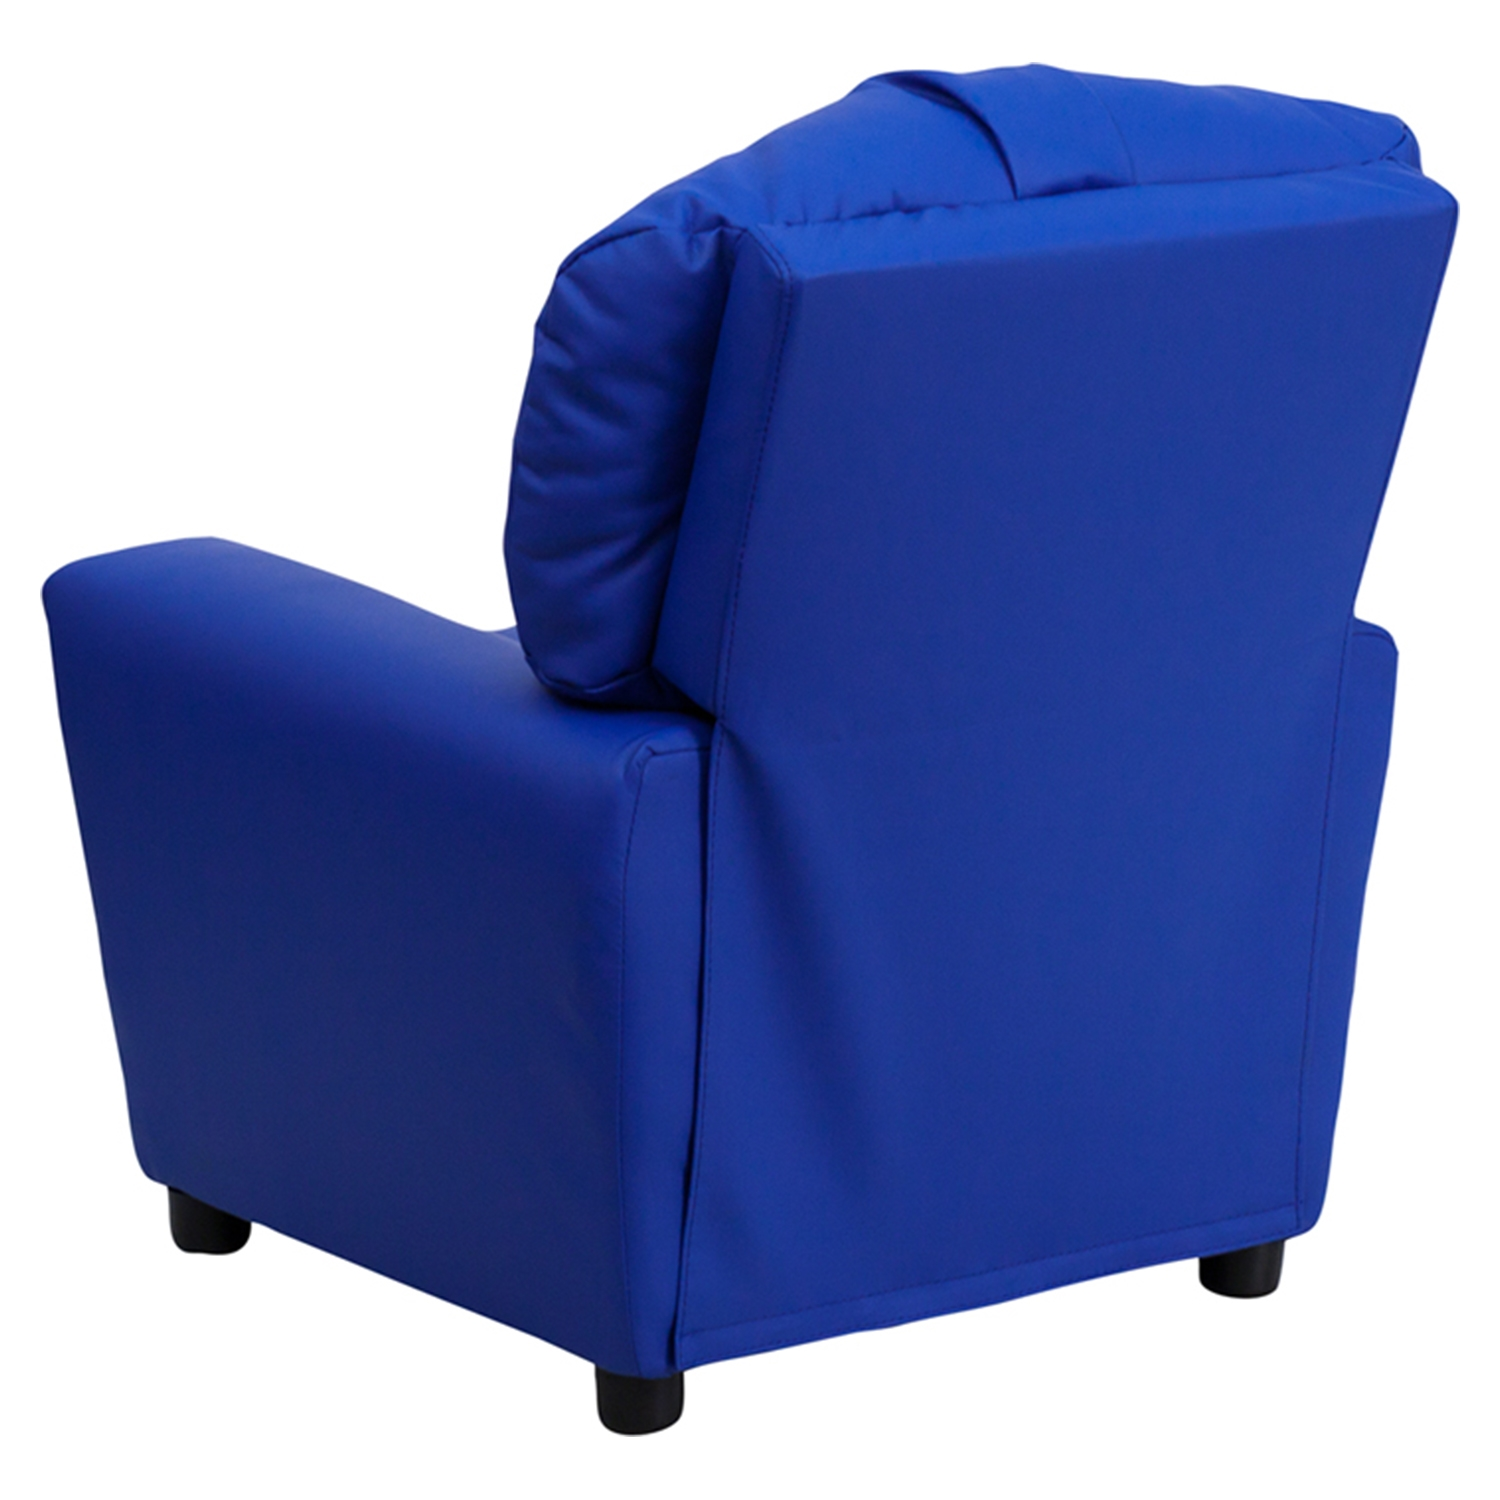 ... Upholstered Kids Recliner Chair   Cup Holder, Blue   FLSH BT 7950  ...